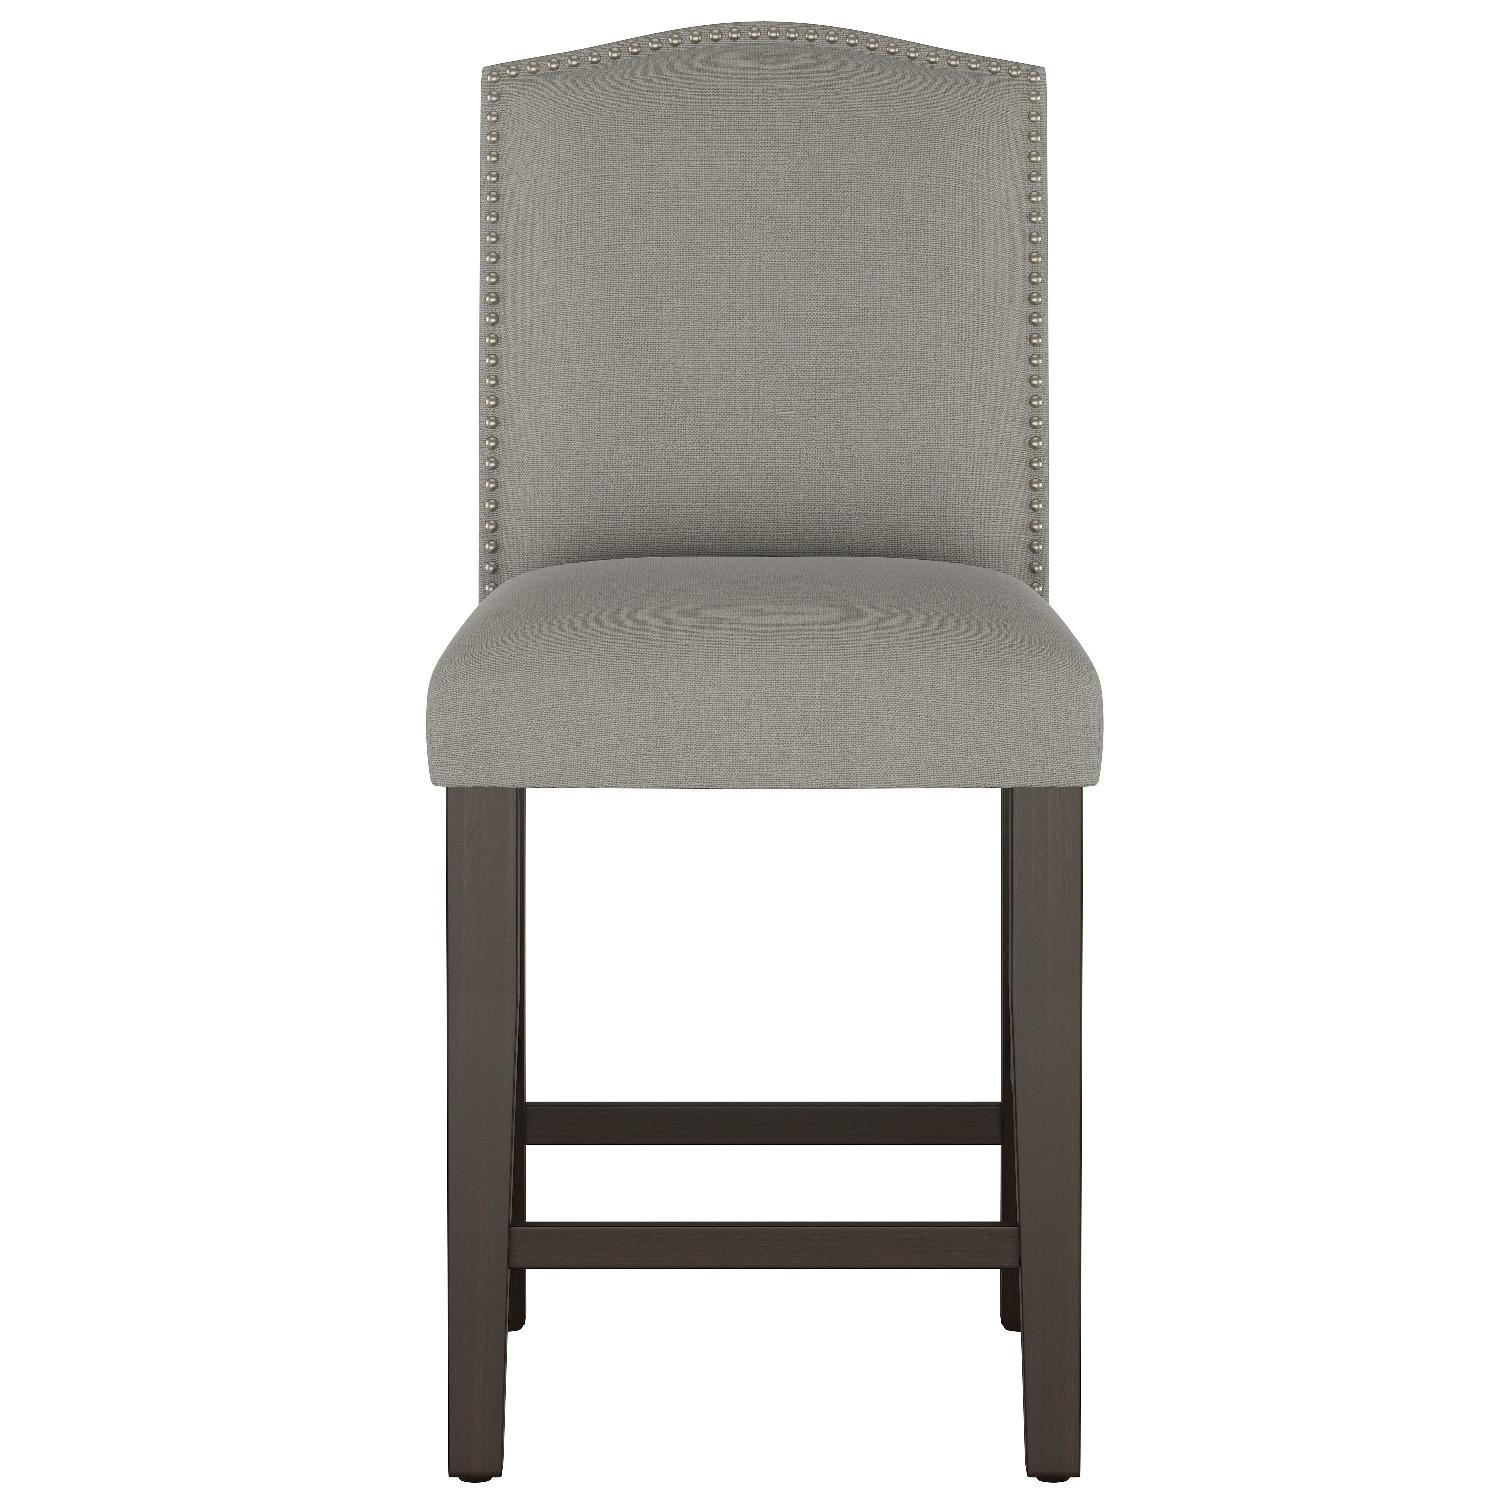 Skyline Furniture Gray Linen Upholstered Nail Button Stools - image-0